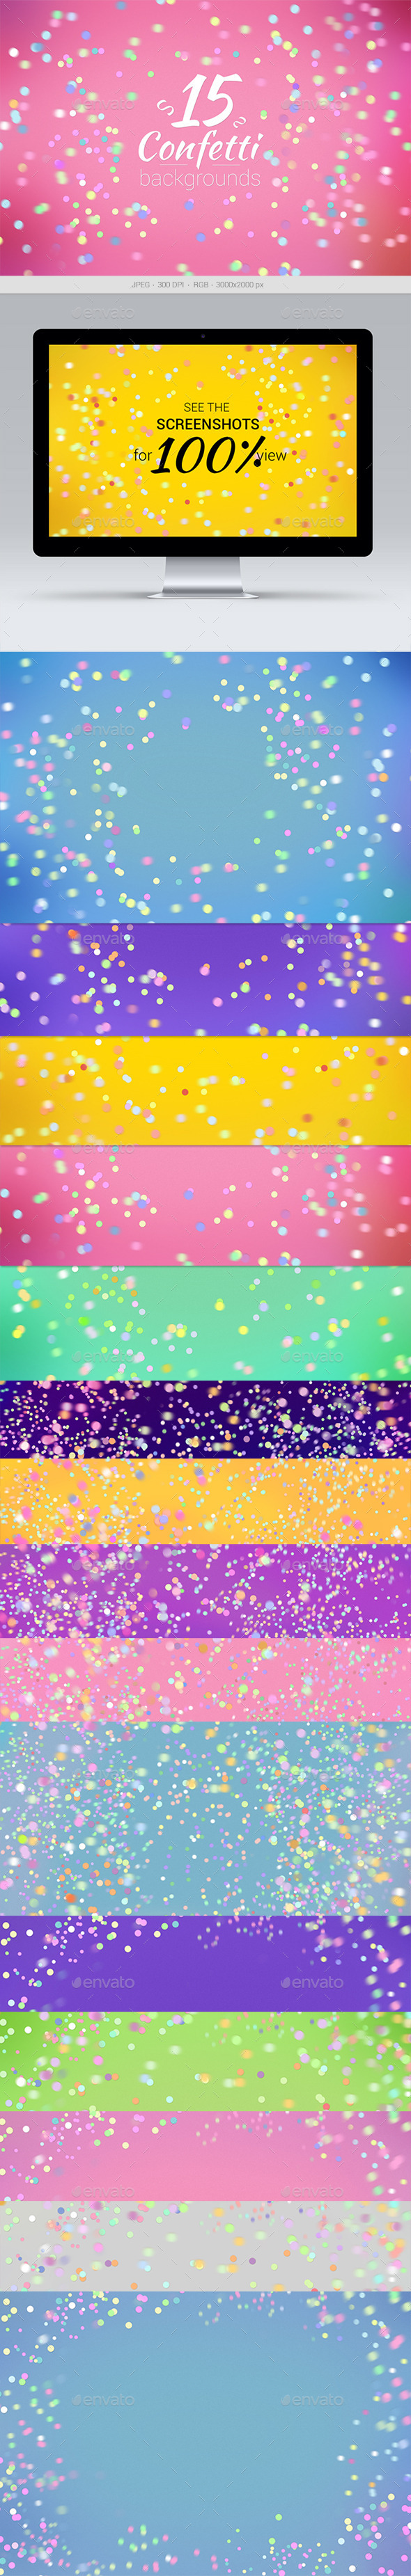 GraphicRiver 15 Confetti Backgrounds 11257626